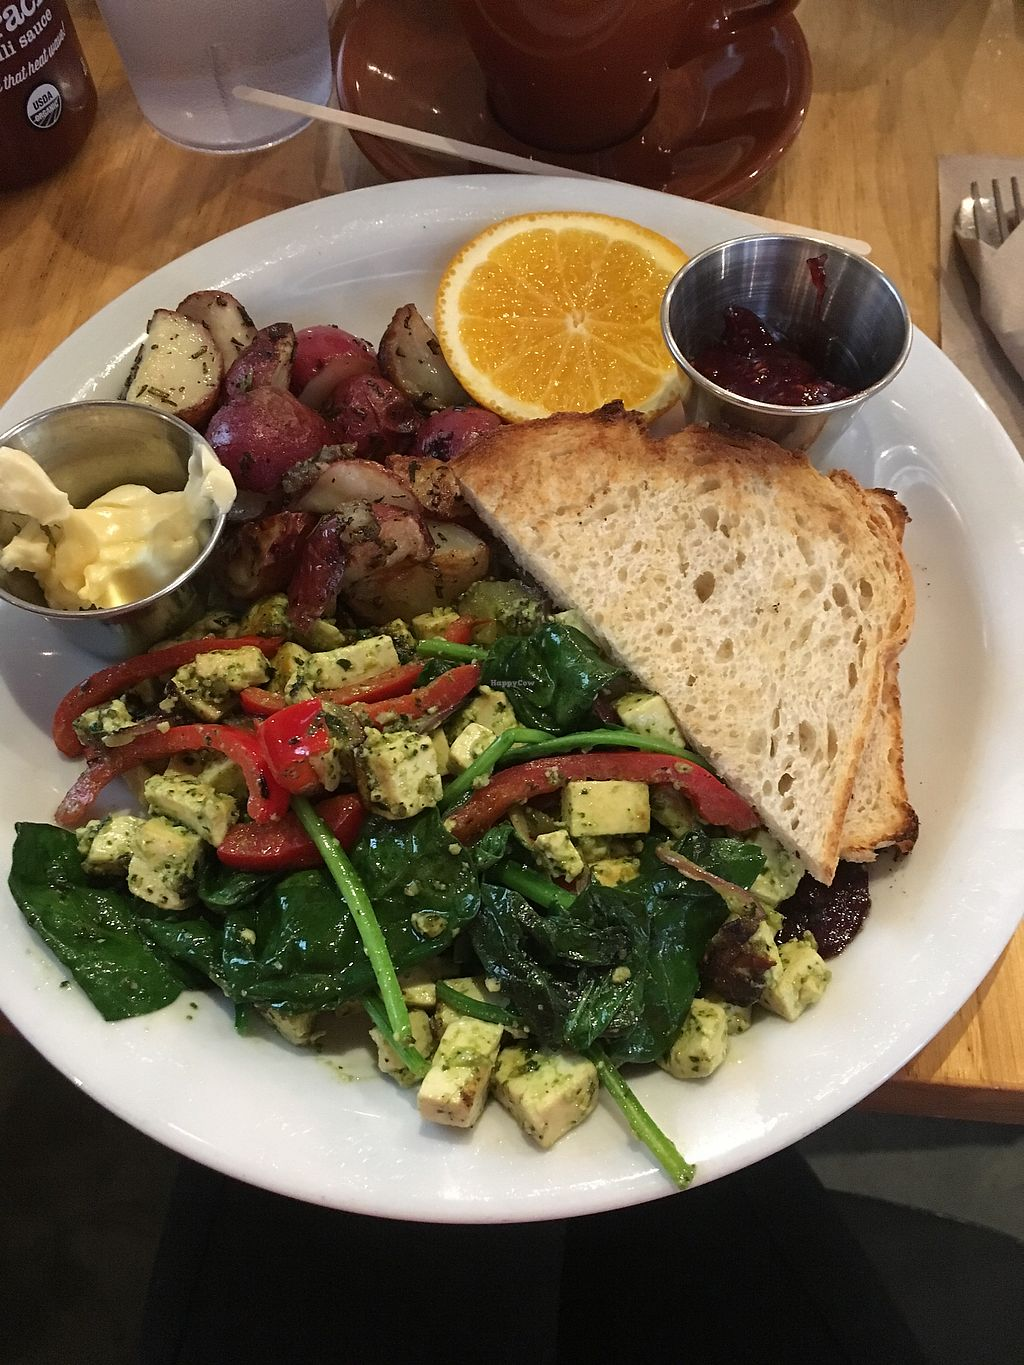 "Photo of The Plant Cafe Organic - Marina Cafe  by <a href=""/members/profile/Medman"">Medman</a> <br/>Tofu scramble <br/> April 18, 2018  - <a href='/contact/abuse/image/14559/387704'>Report</a>"